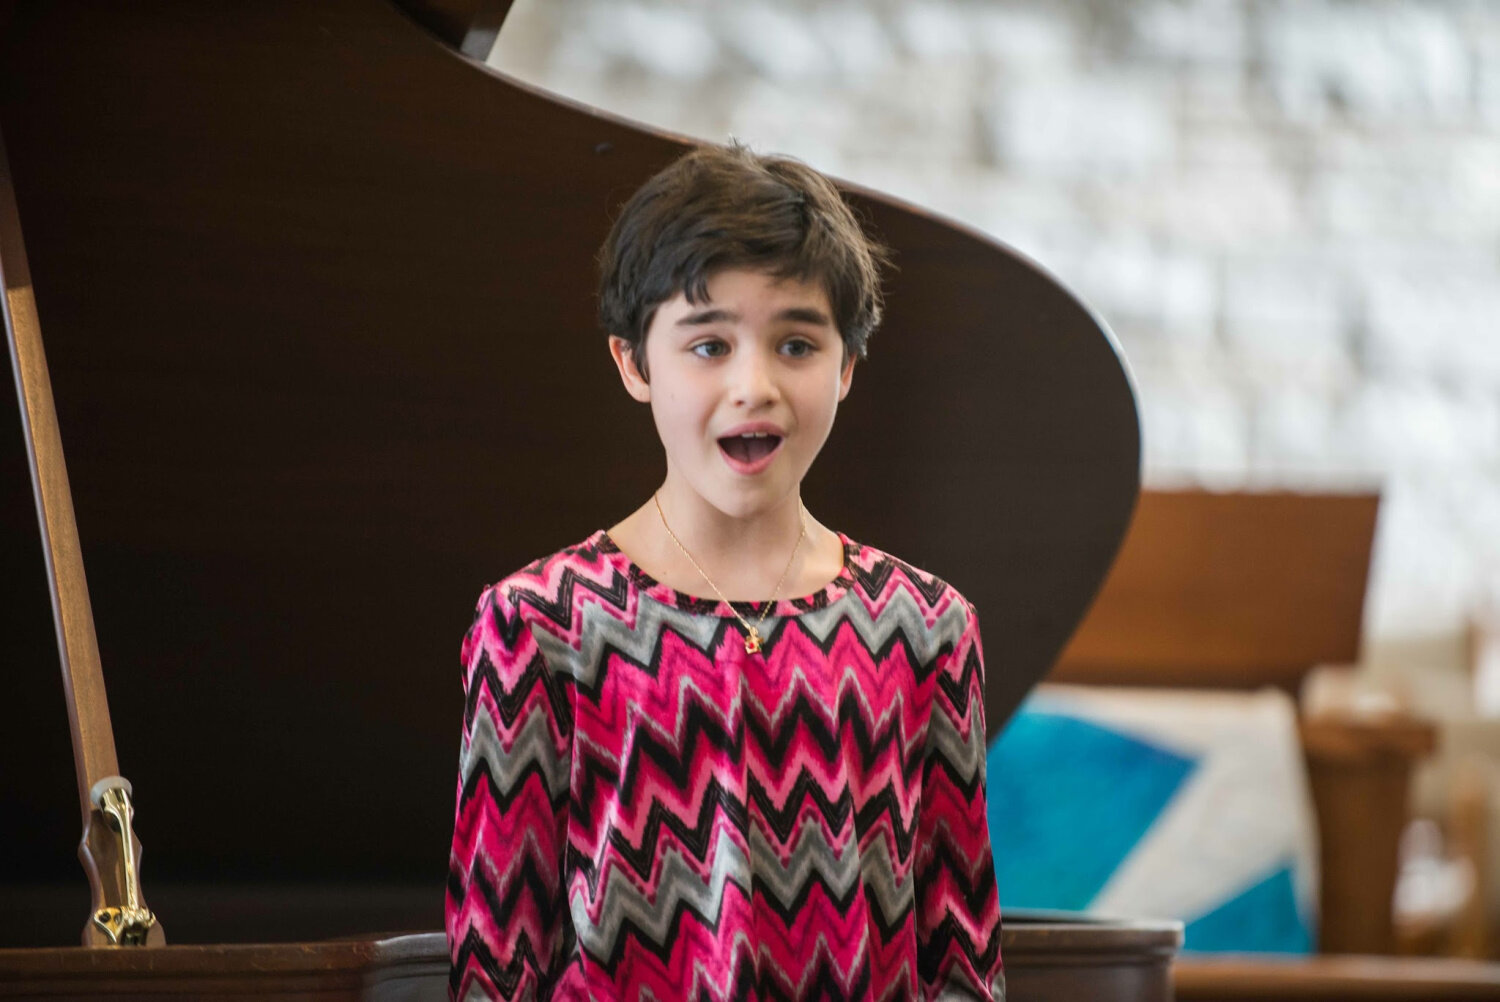 Voice and Singing Lessons   in Mendota Heights   for beginner, intermediate, and advanced students of all ages   CALL 651-263-9475 TO SCHEDULE YOUR FIRST LESSON   REQUEST INFO